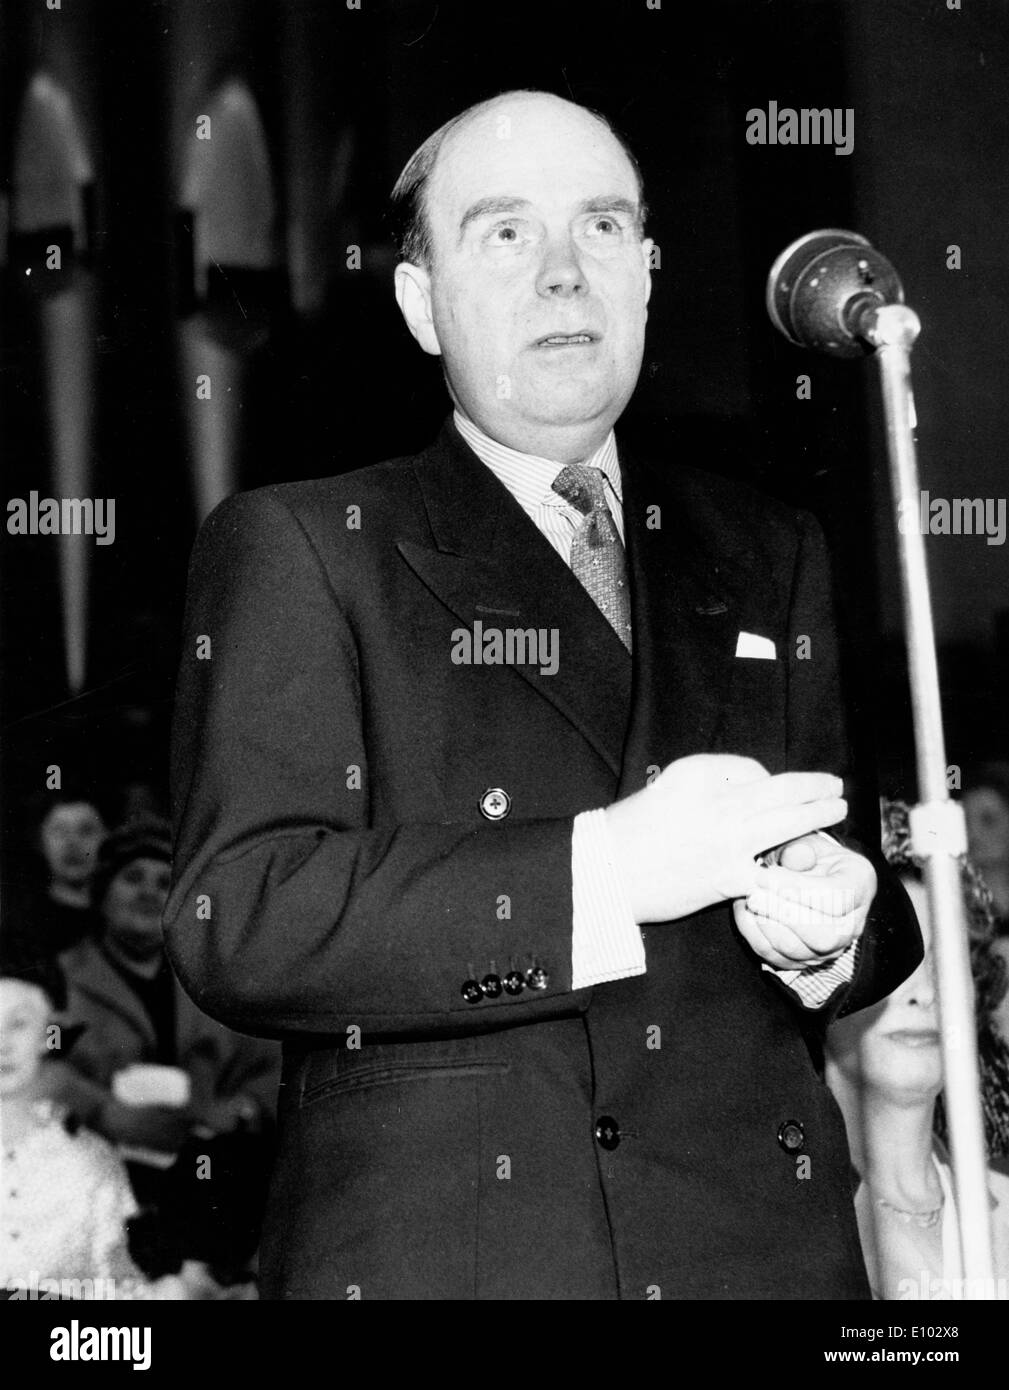 Politician Iain Macleod gives speech at event - Stock Image